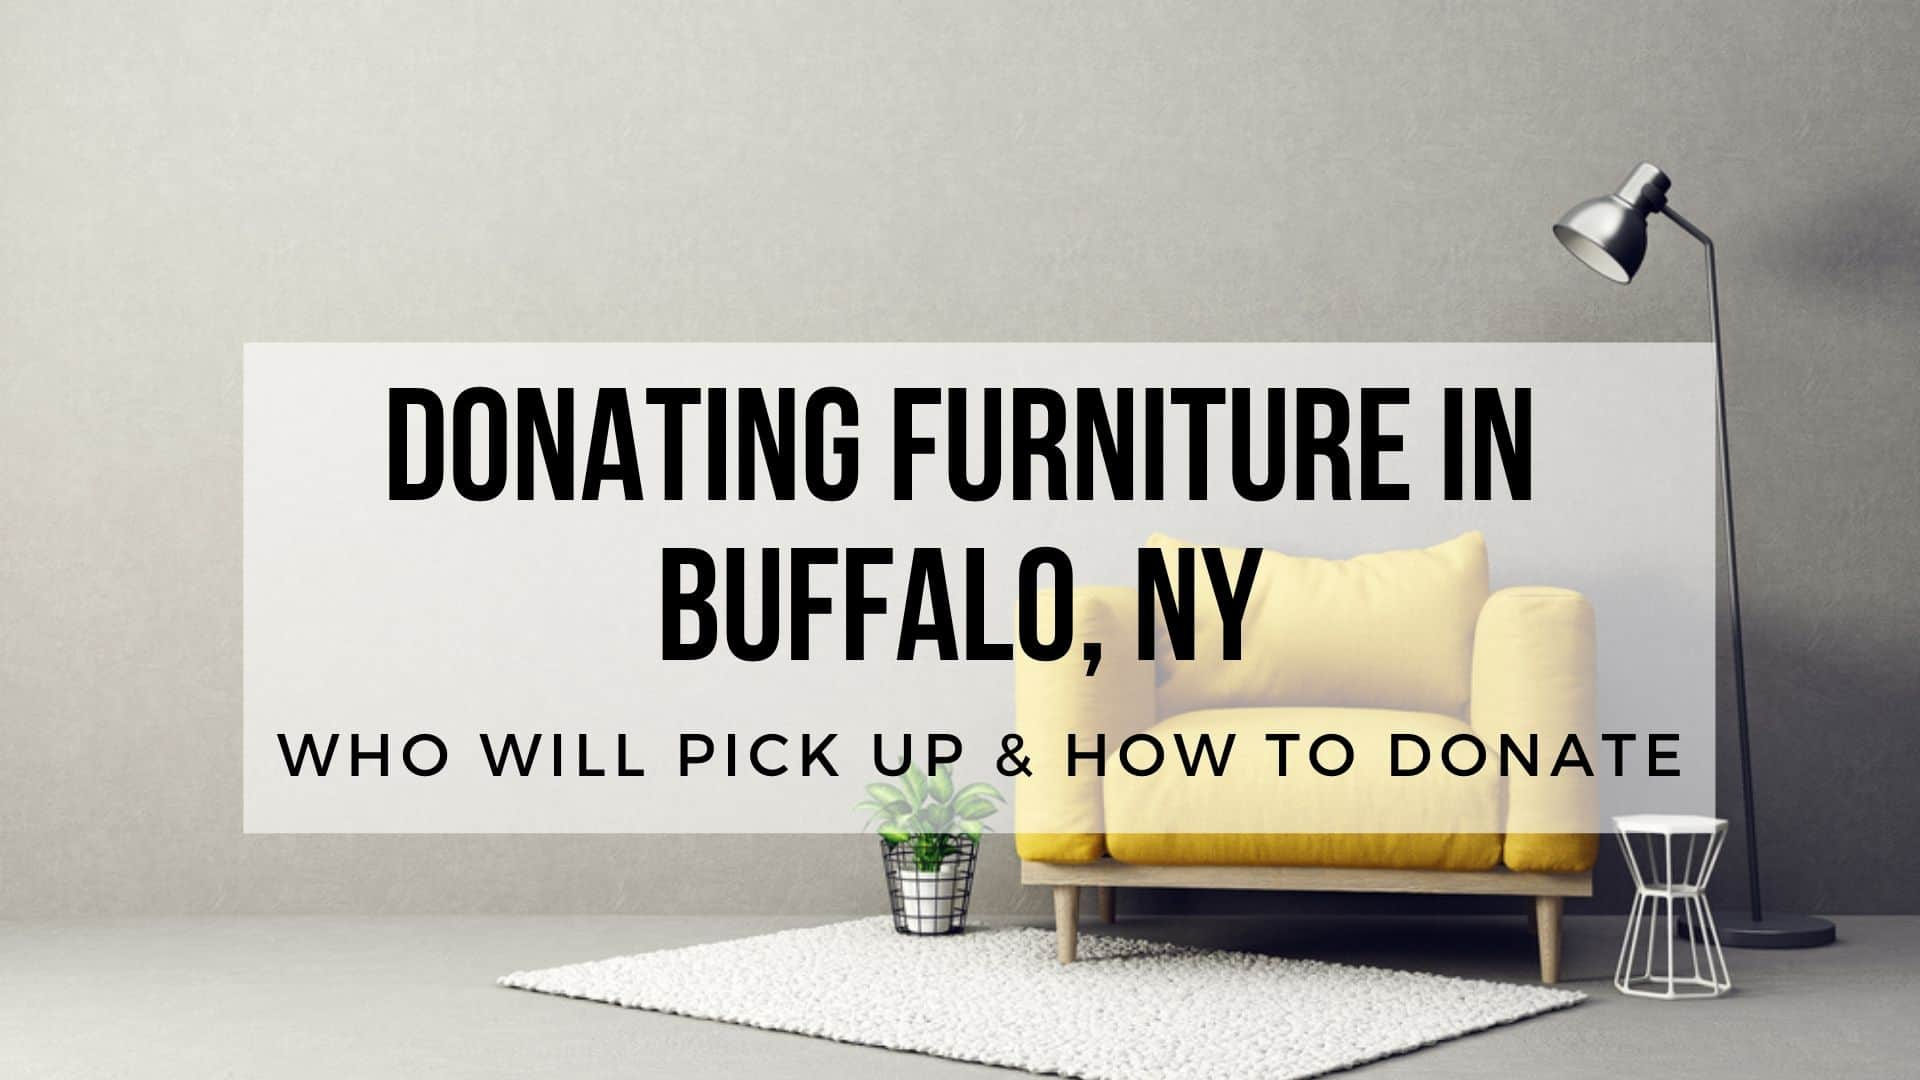 Donating Furniture in Buffalo NY